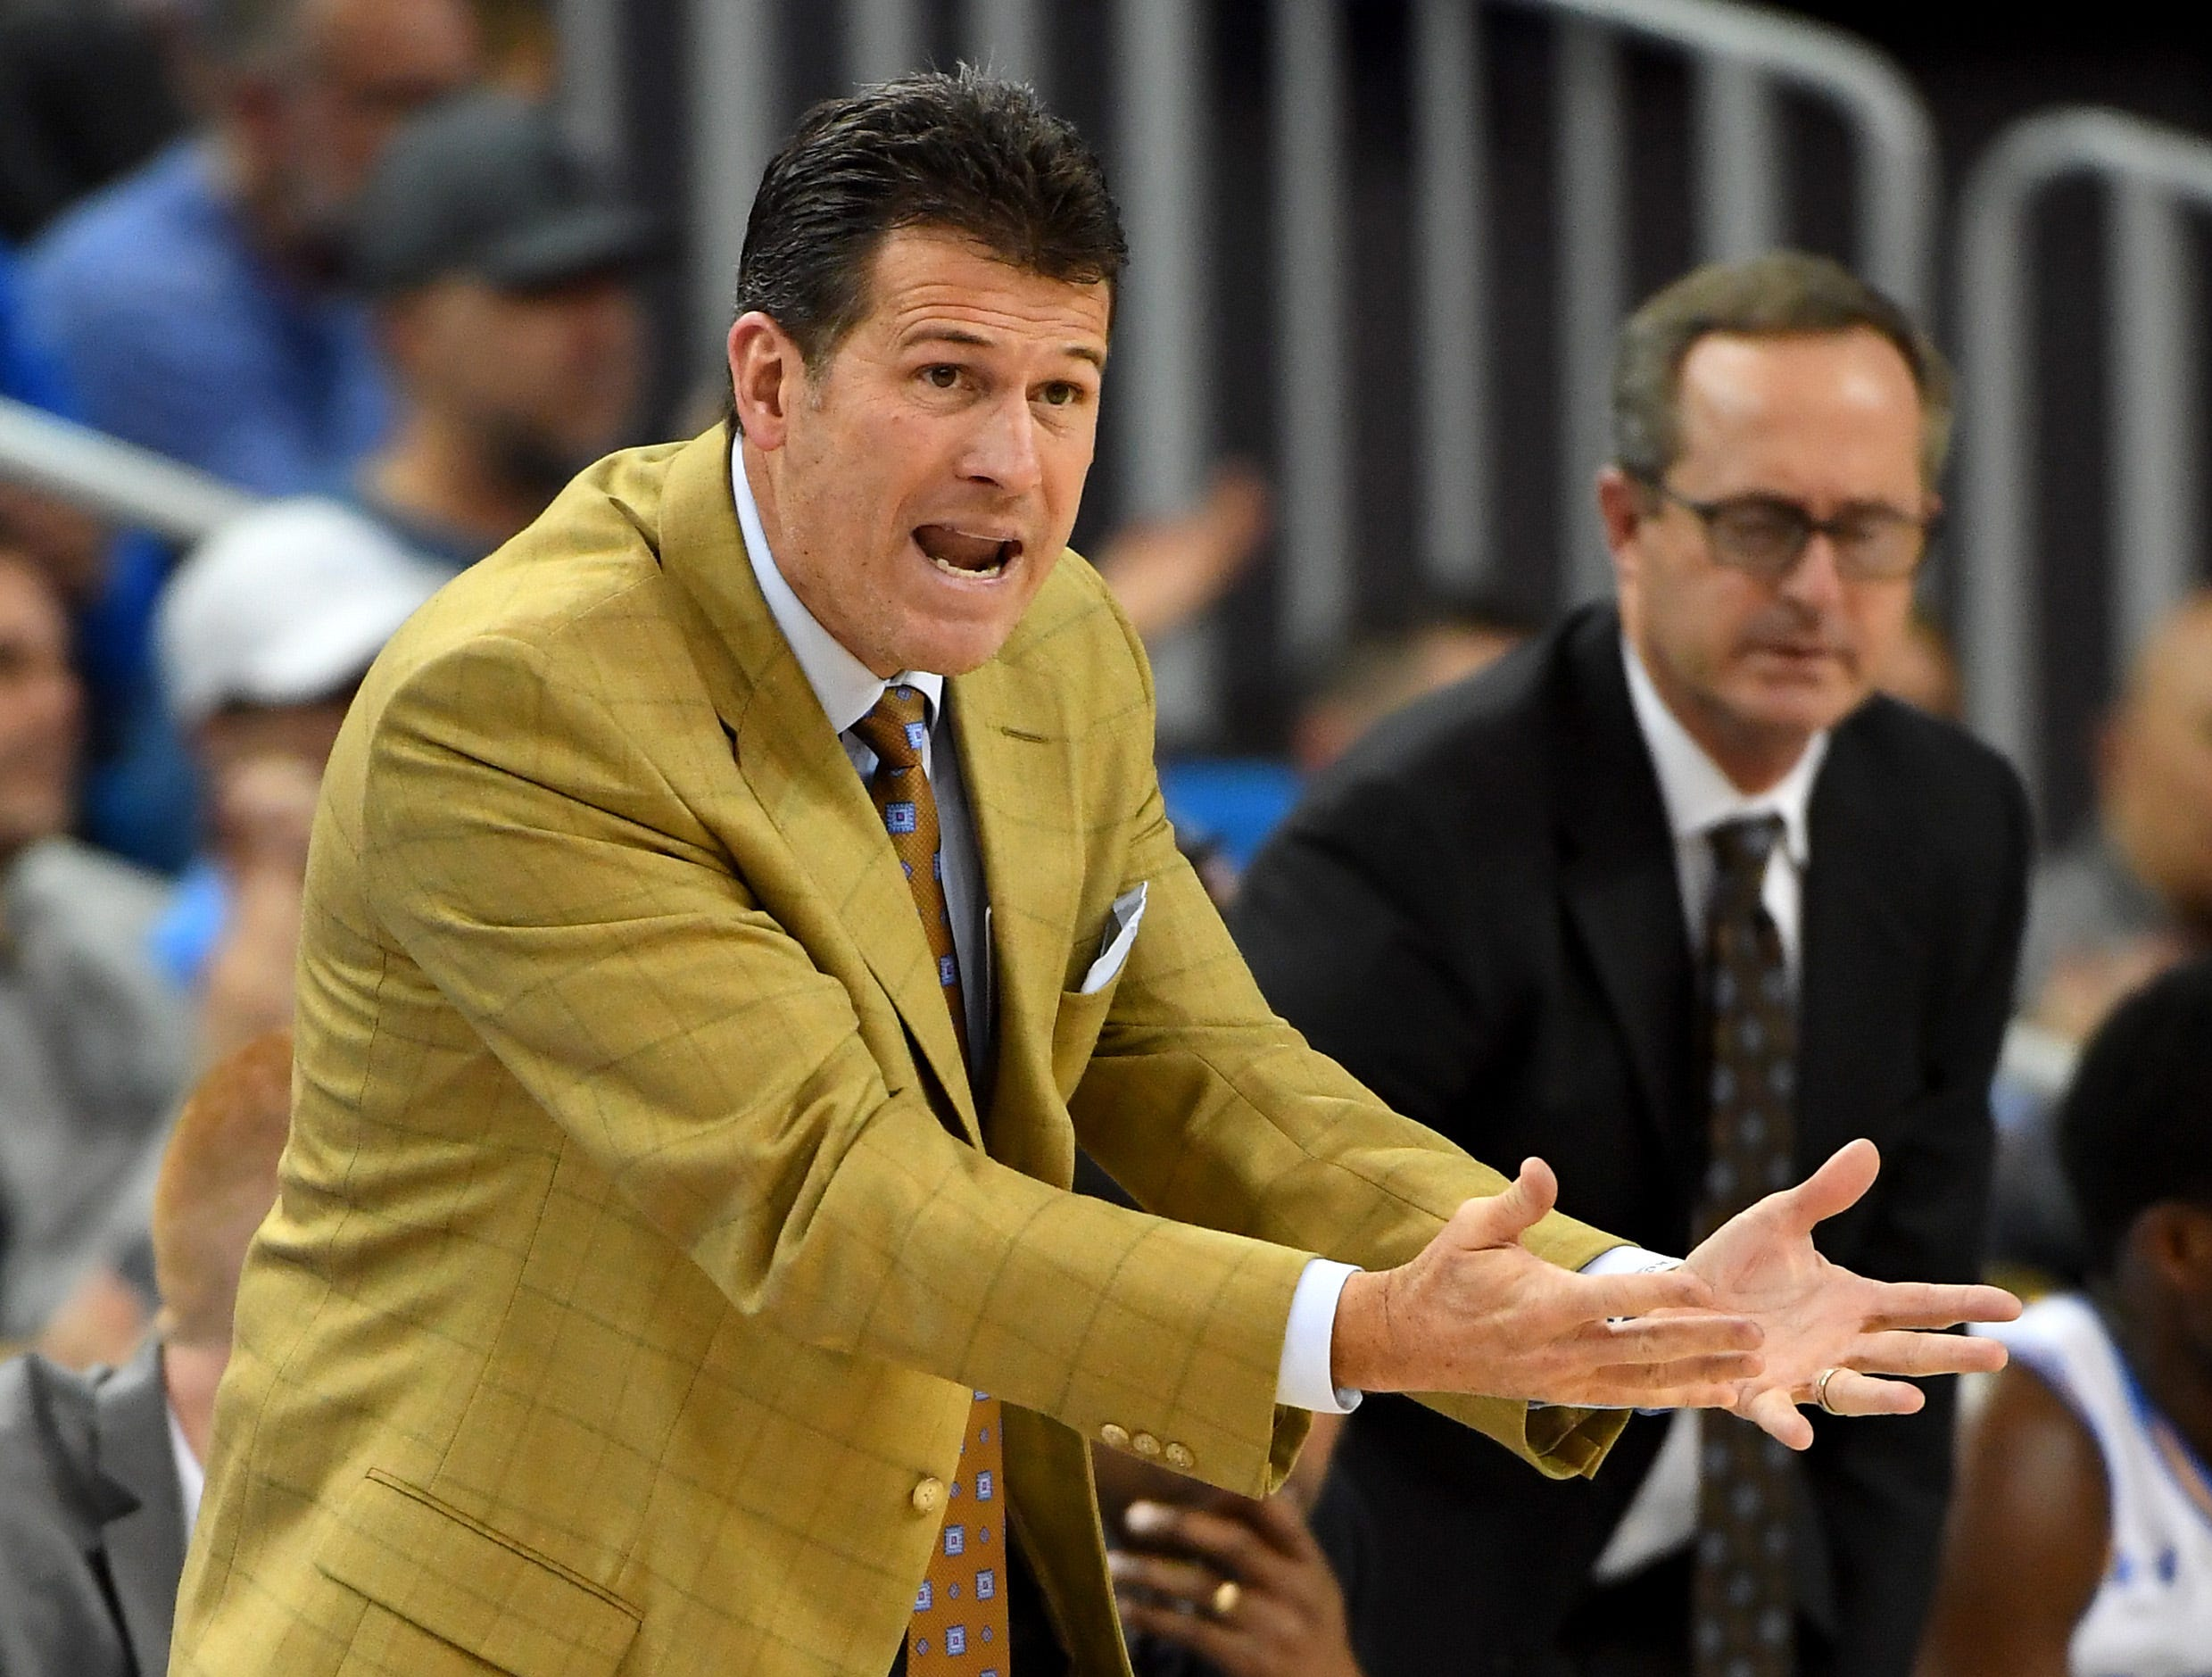 Dec 2, 2018; Los Angeles, CA, USA; UCLA Bruins head coach Steve Alford during the second half of the game against the Loyola Marymount Lions at Pauley Pavilion. Mandatory Credit: Jayne Kamin-Oncea-USA TODAY Sports